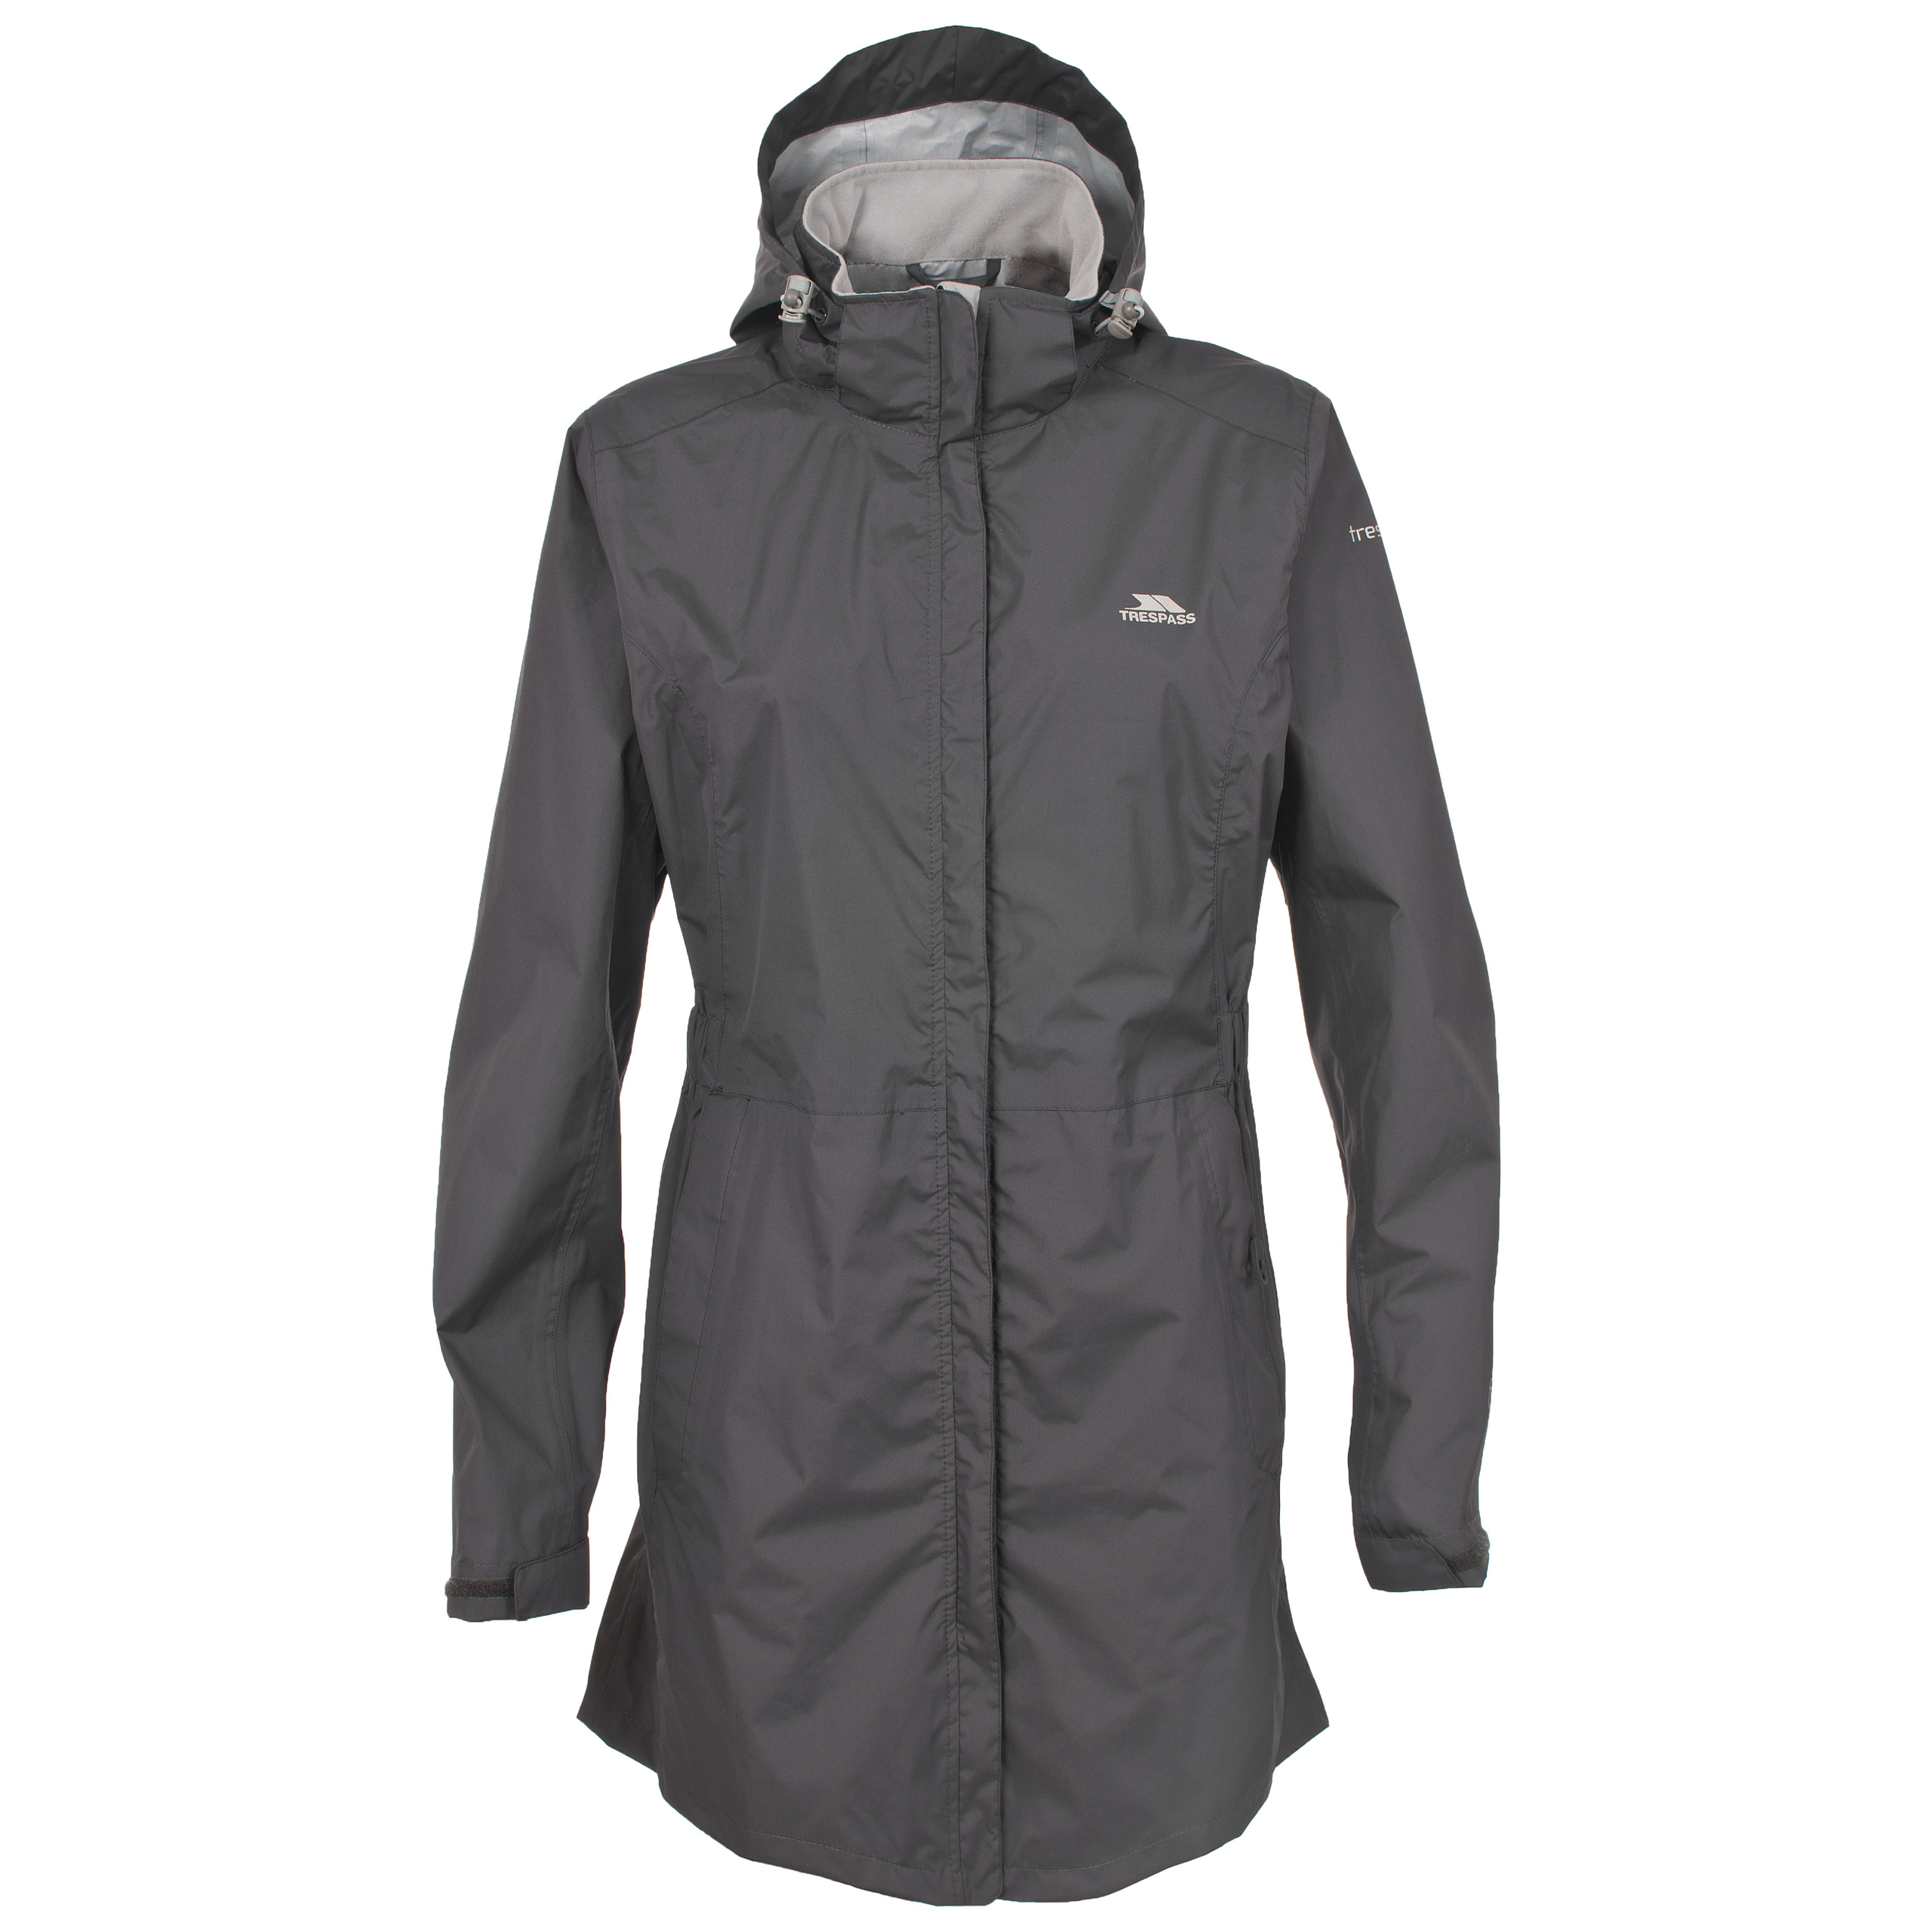 Ladies Black Waterproof Jacket | Jackets Review